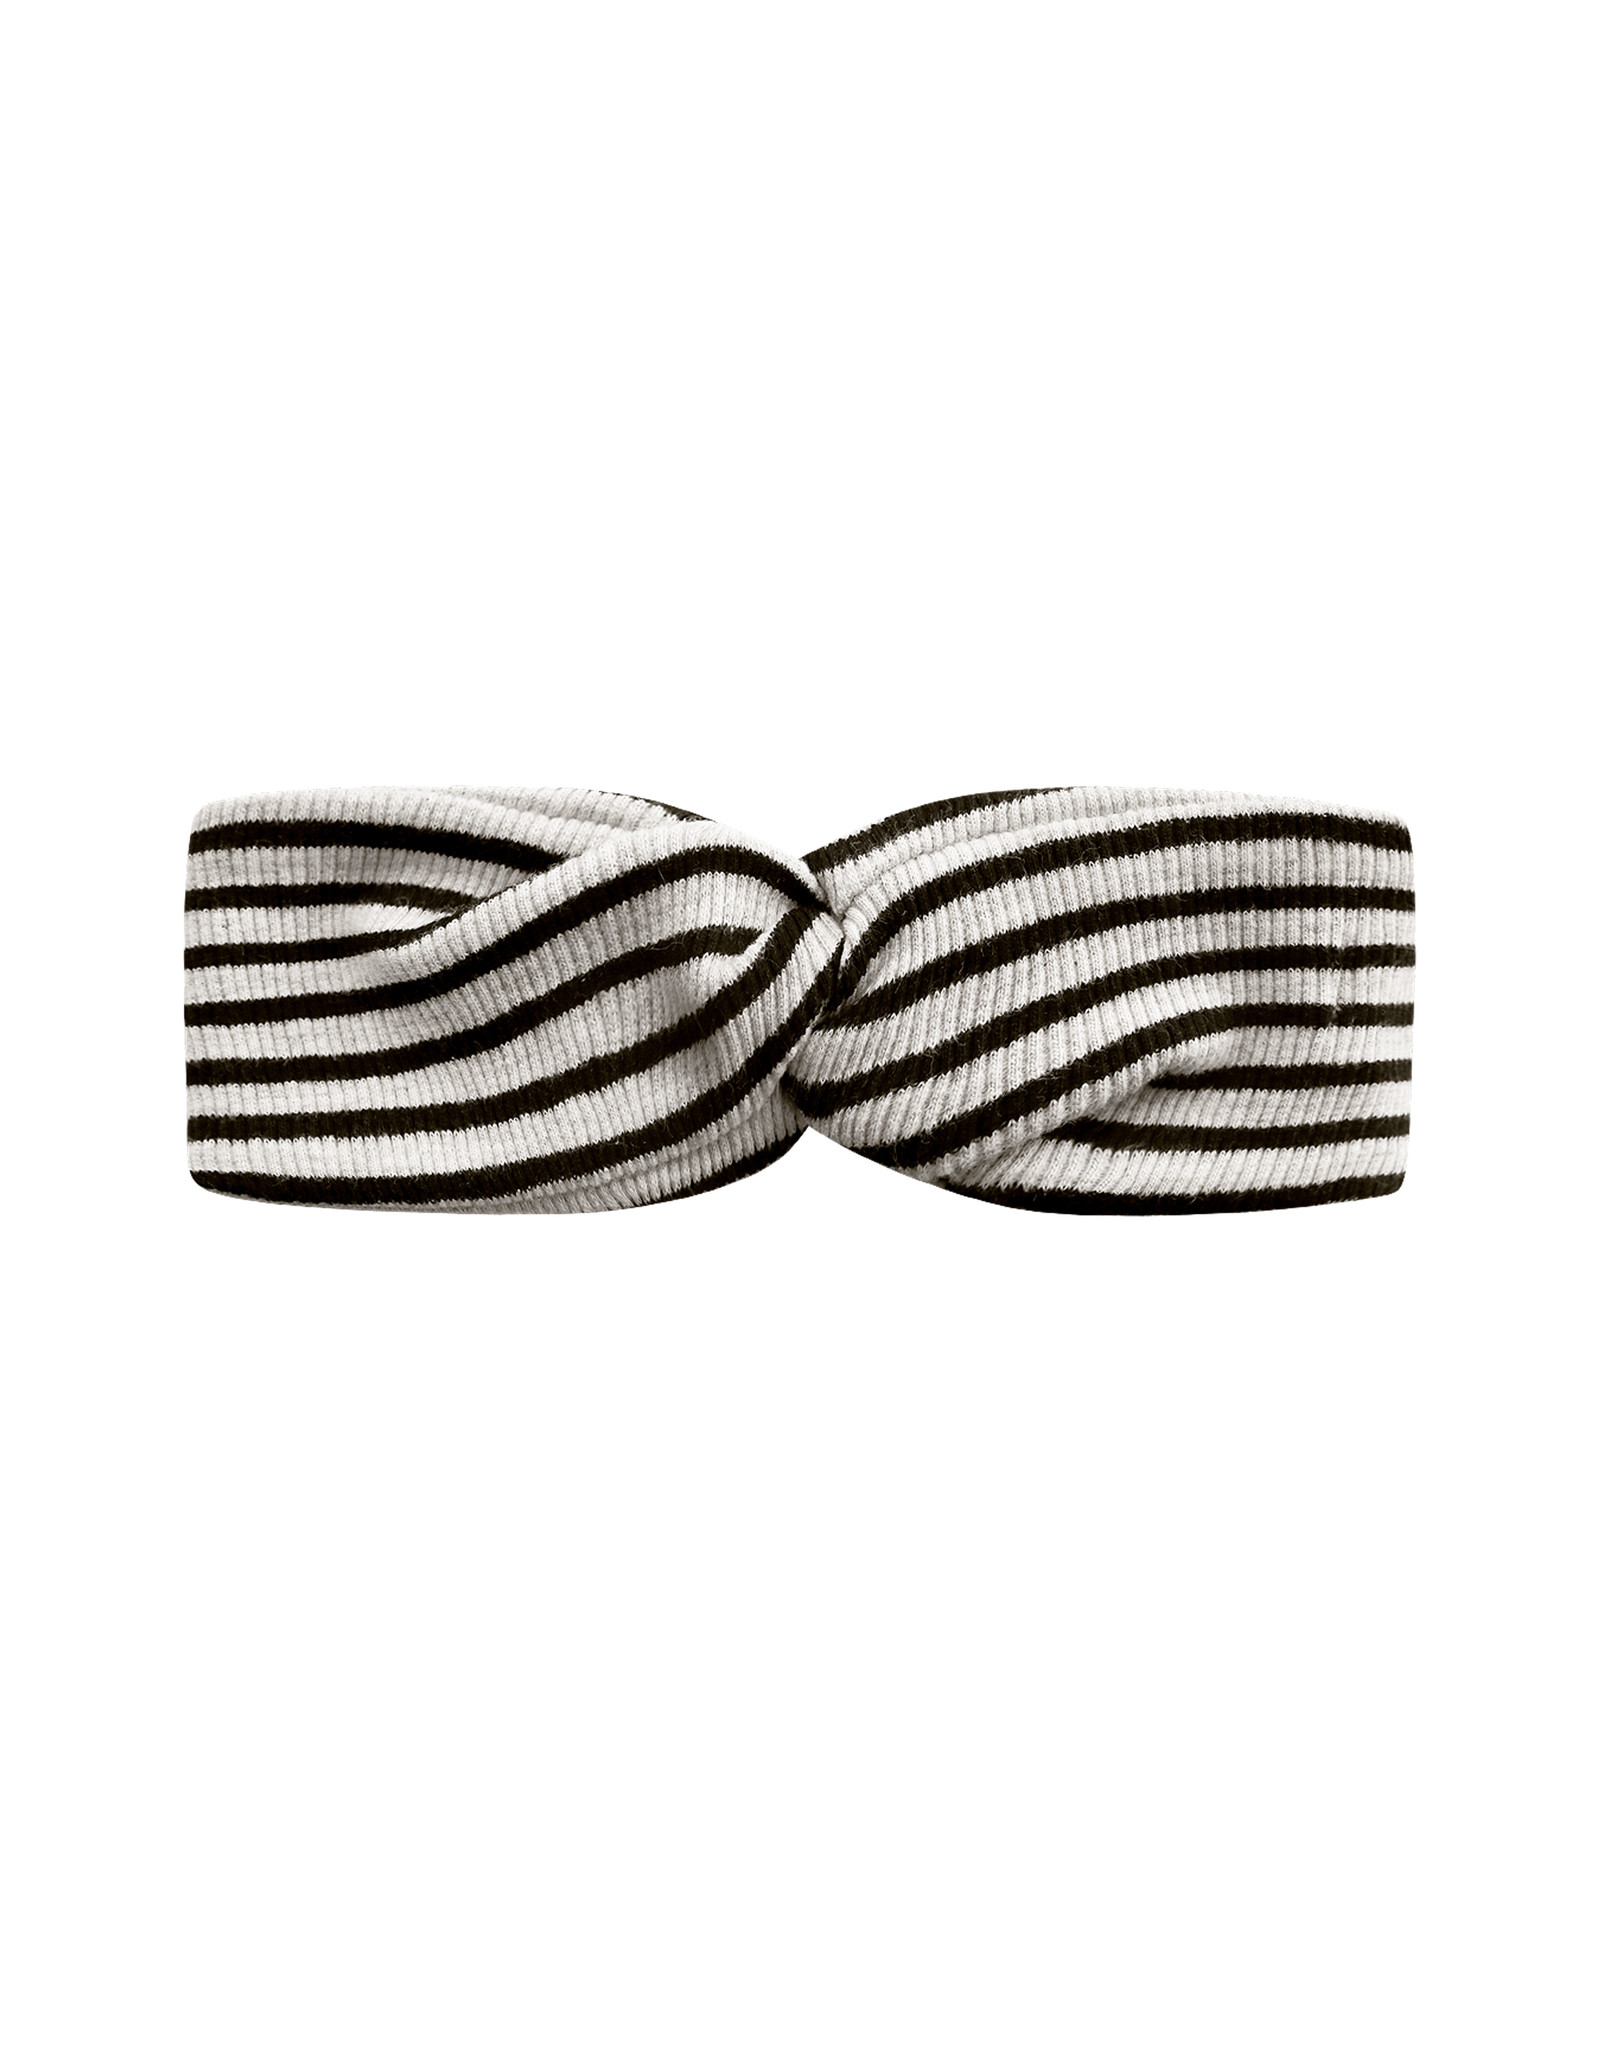 Your Wishes Beige - Stripes | Twisted Headband Chalk